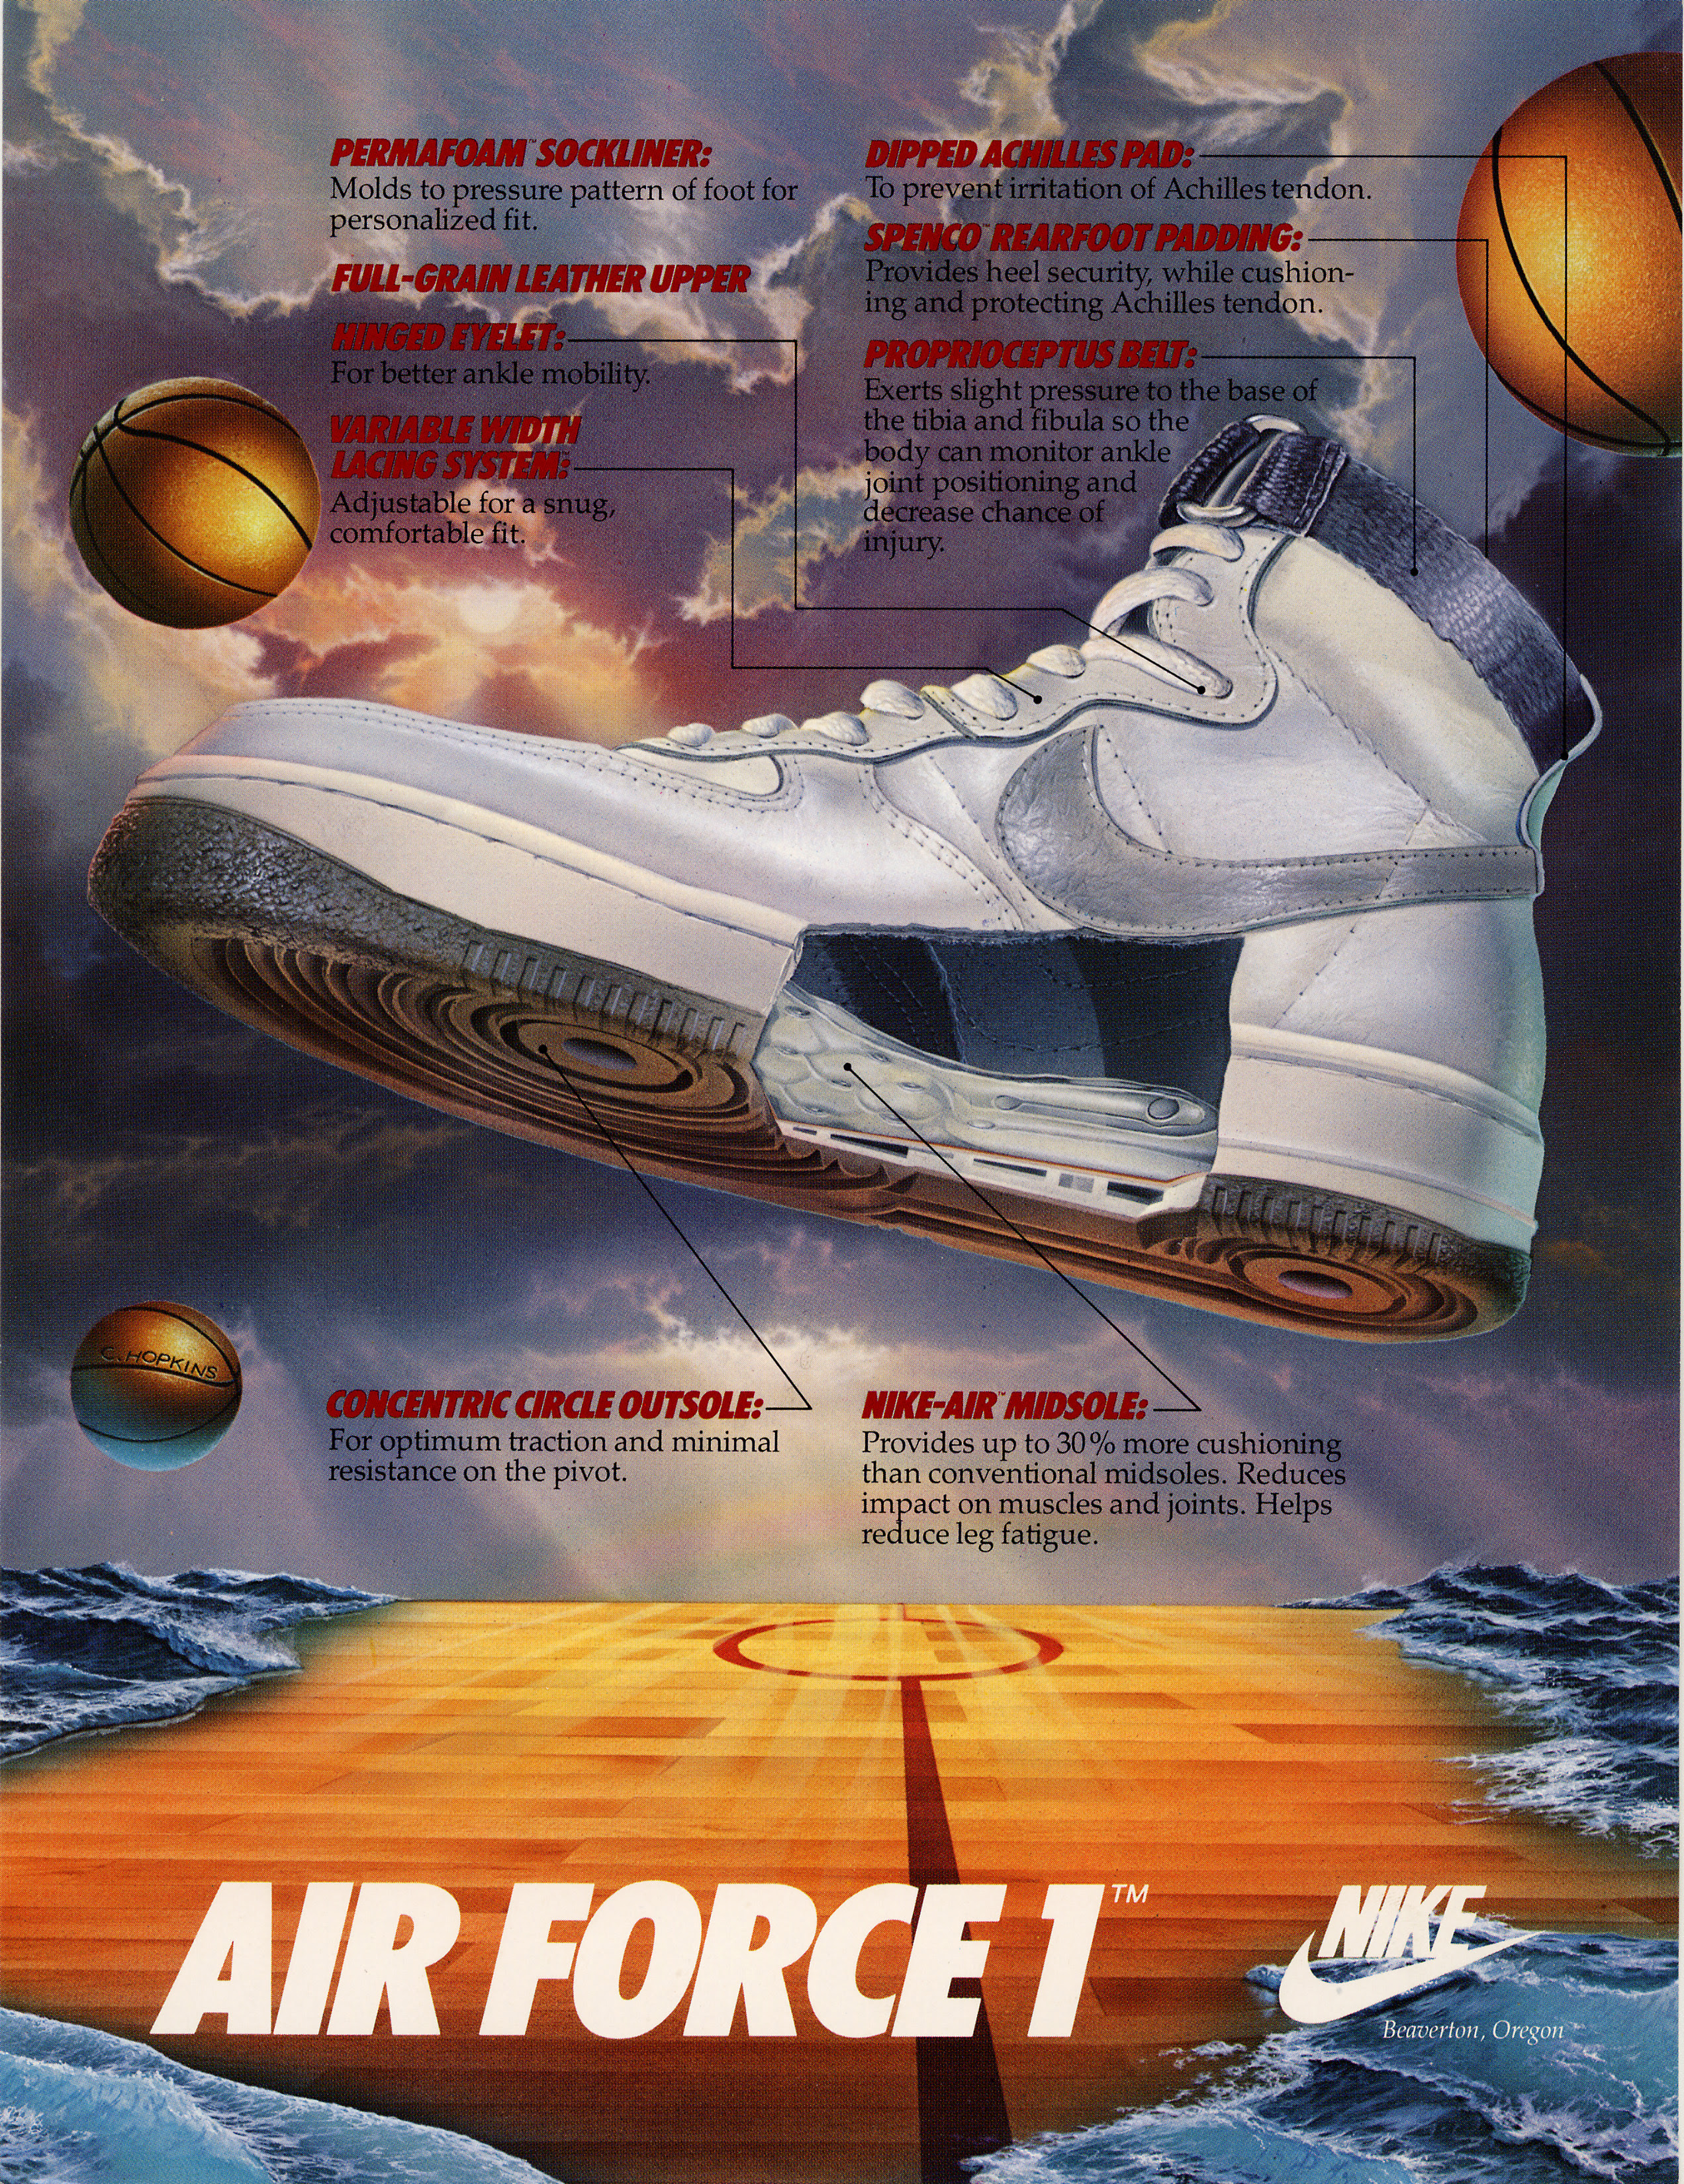 KICK OF THE WEEK #22 : NIKE SPECIAL FIELD AIR FORCE 1